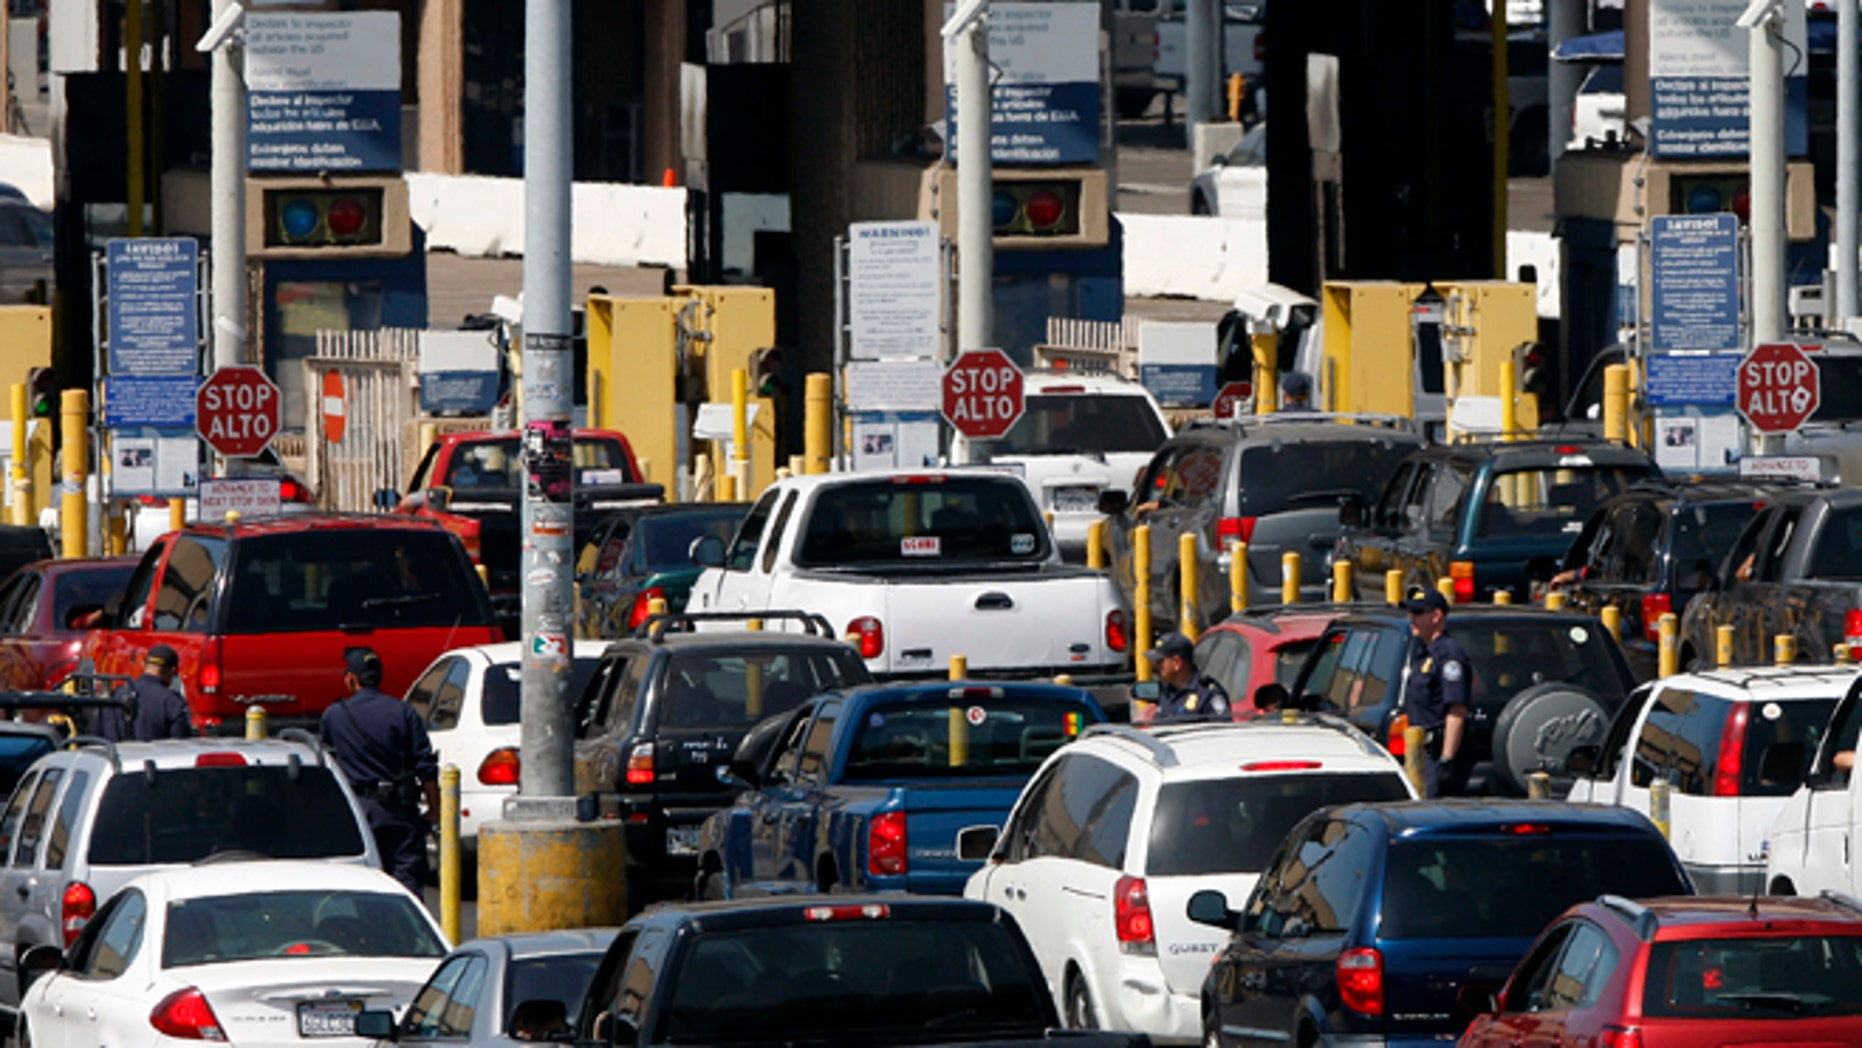 Federal agents mix into a swarm of automobiles as they do security checks  on vehicles waiting to enter the U.S. at the San Ysidro Border Crossing in San Diego, on Sept. 22, 2009.